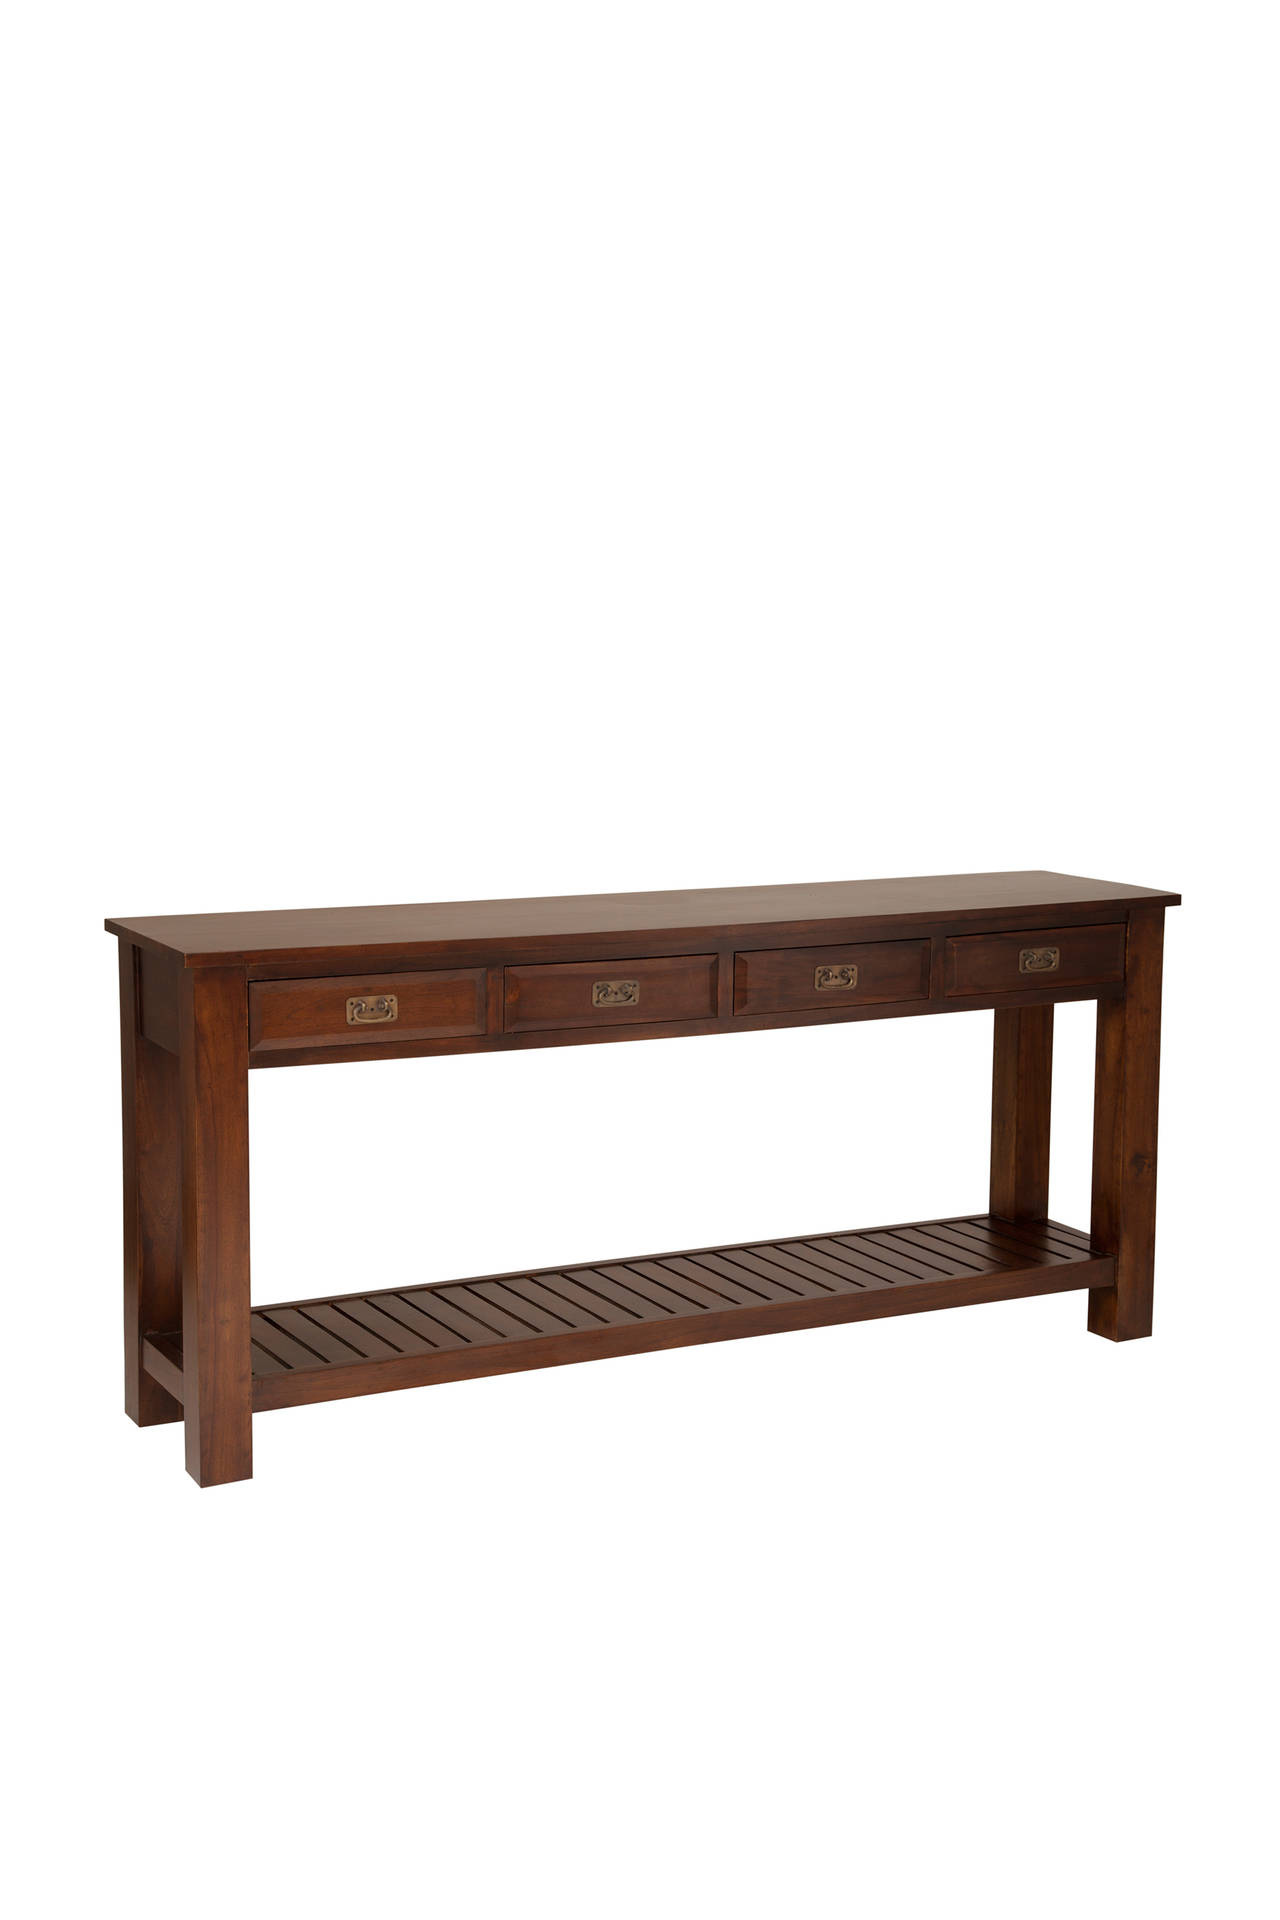 CONSOL TABLE LARGE